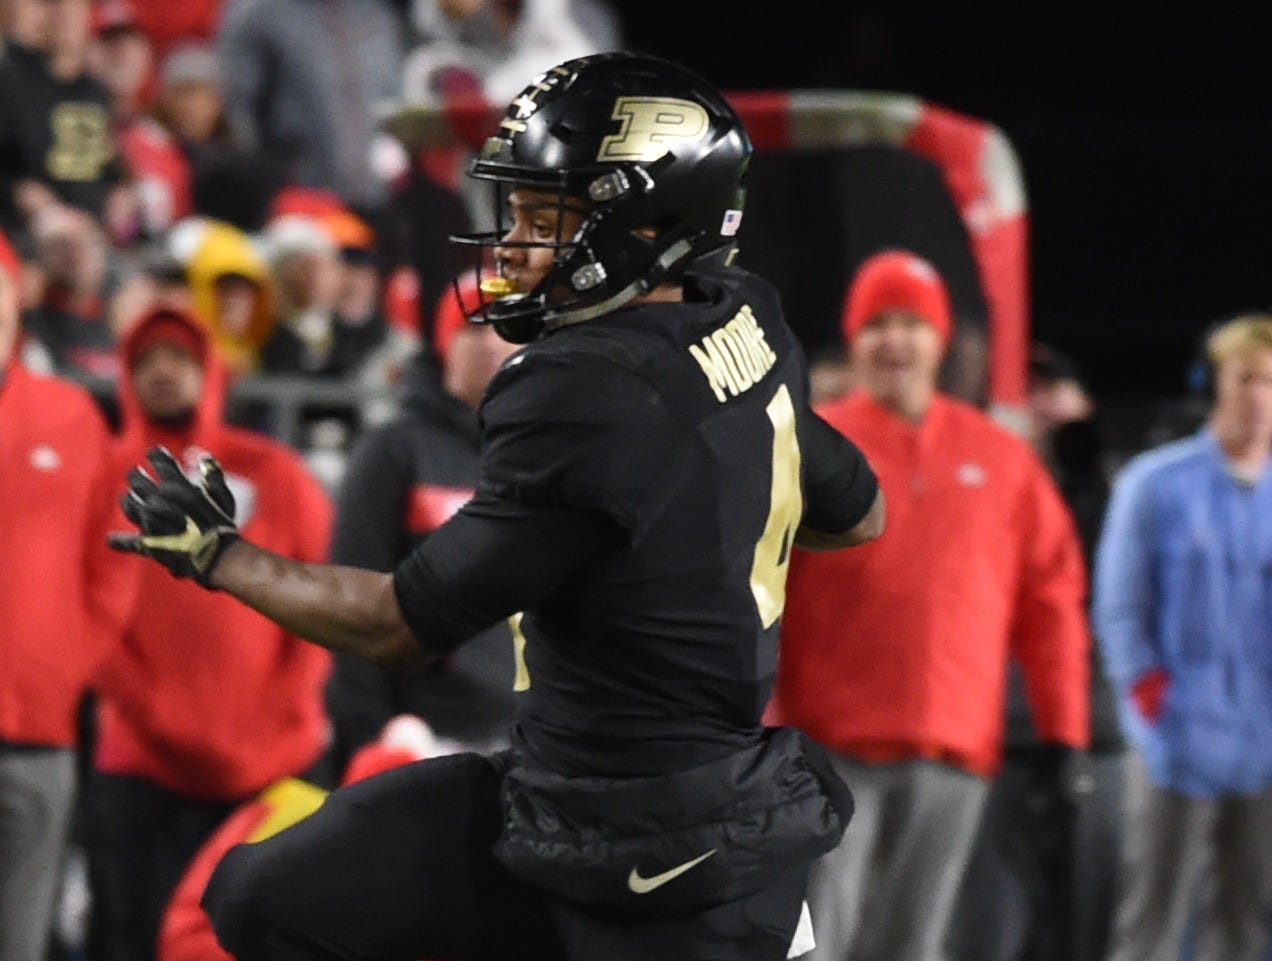 The Boiler faithful braved the cold and wind Saturday to roast some Buckeyes in front of a packed house at Ross-Ade Stadium. Rondale Moore